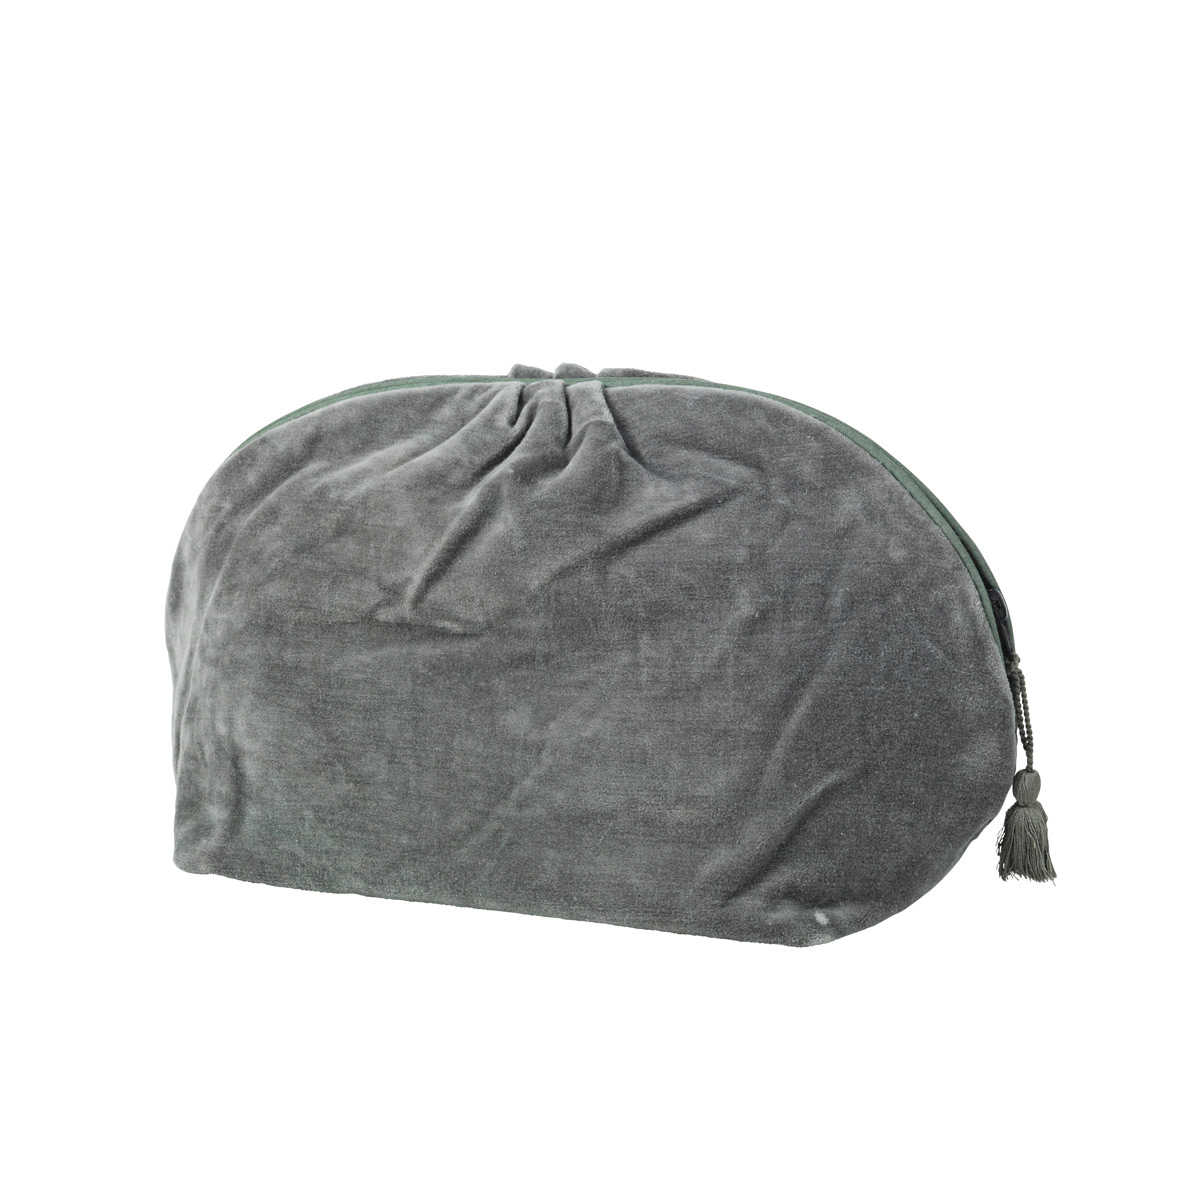 71172007-makeup-bag-dark-grey